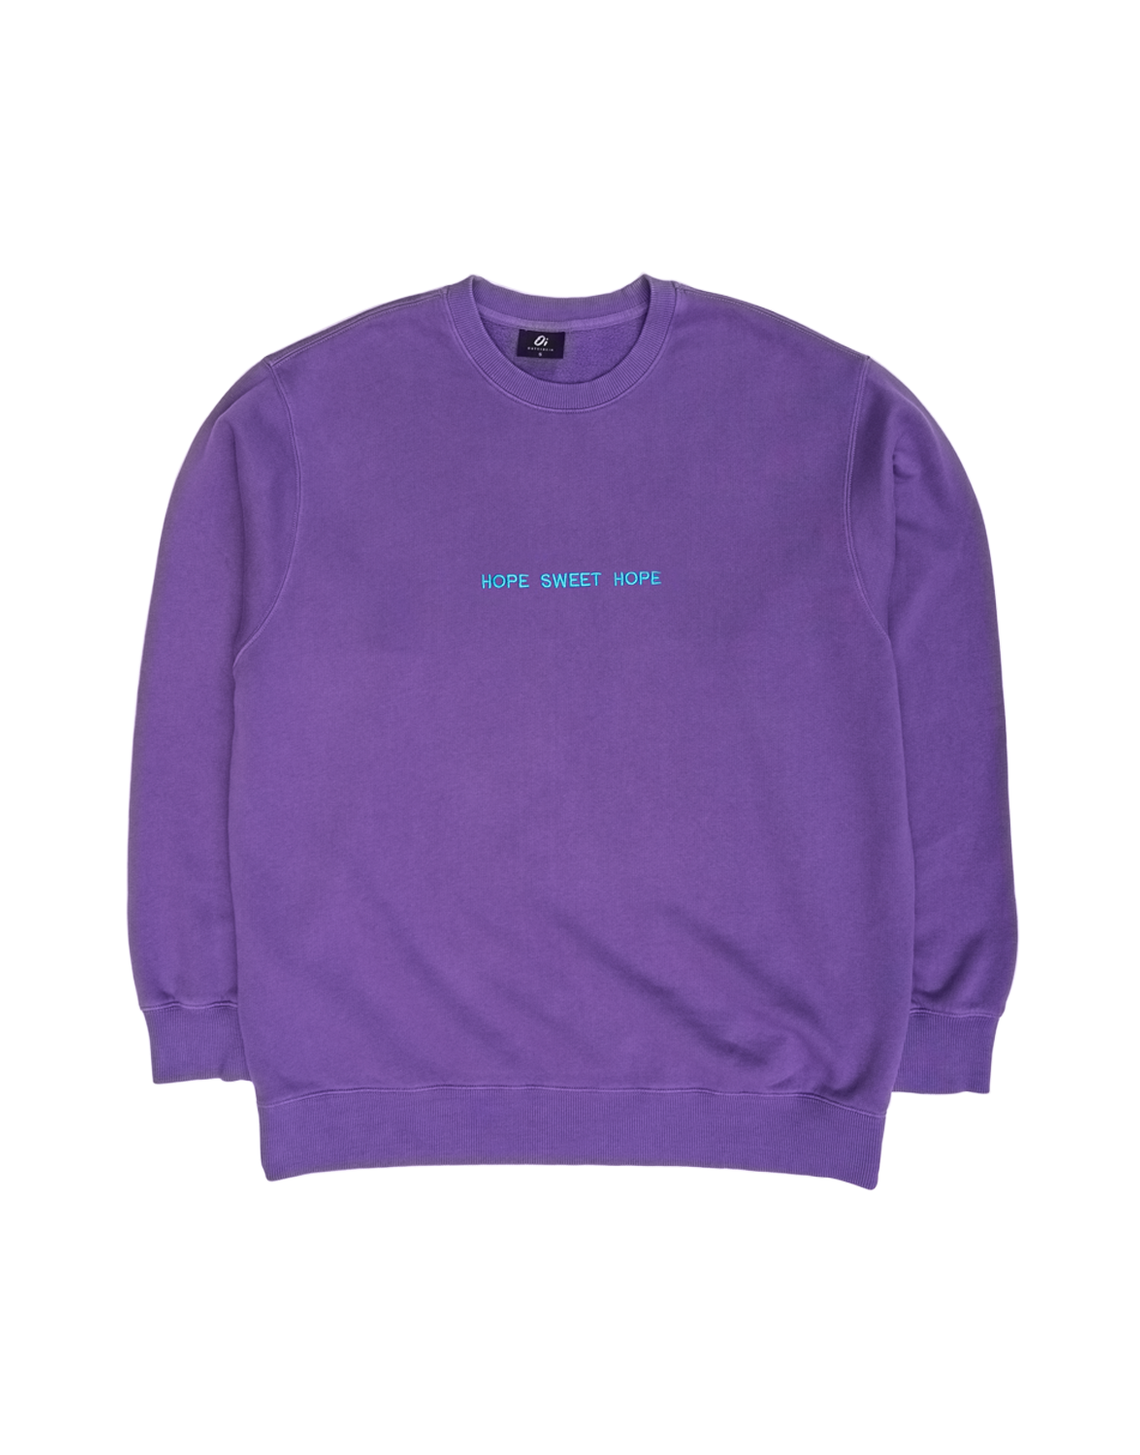 Purple Hope Sweet Hope Sweater - OutsideIn